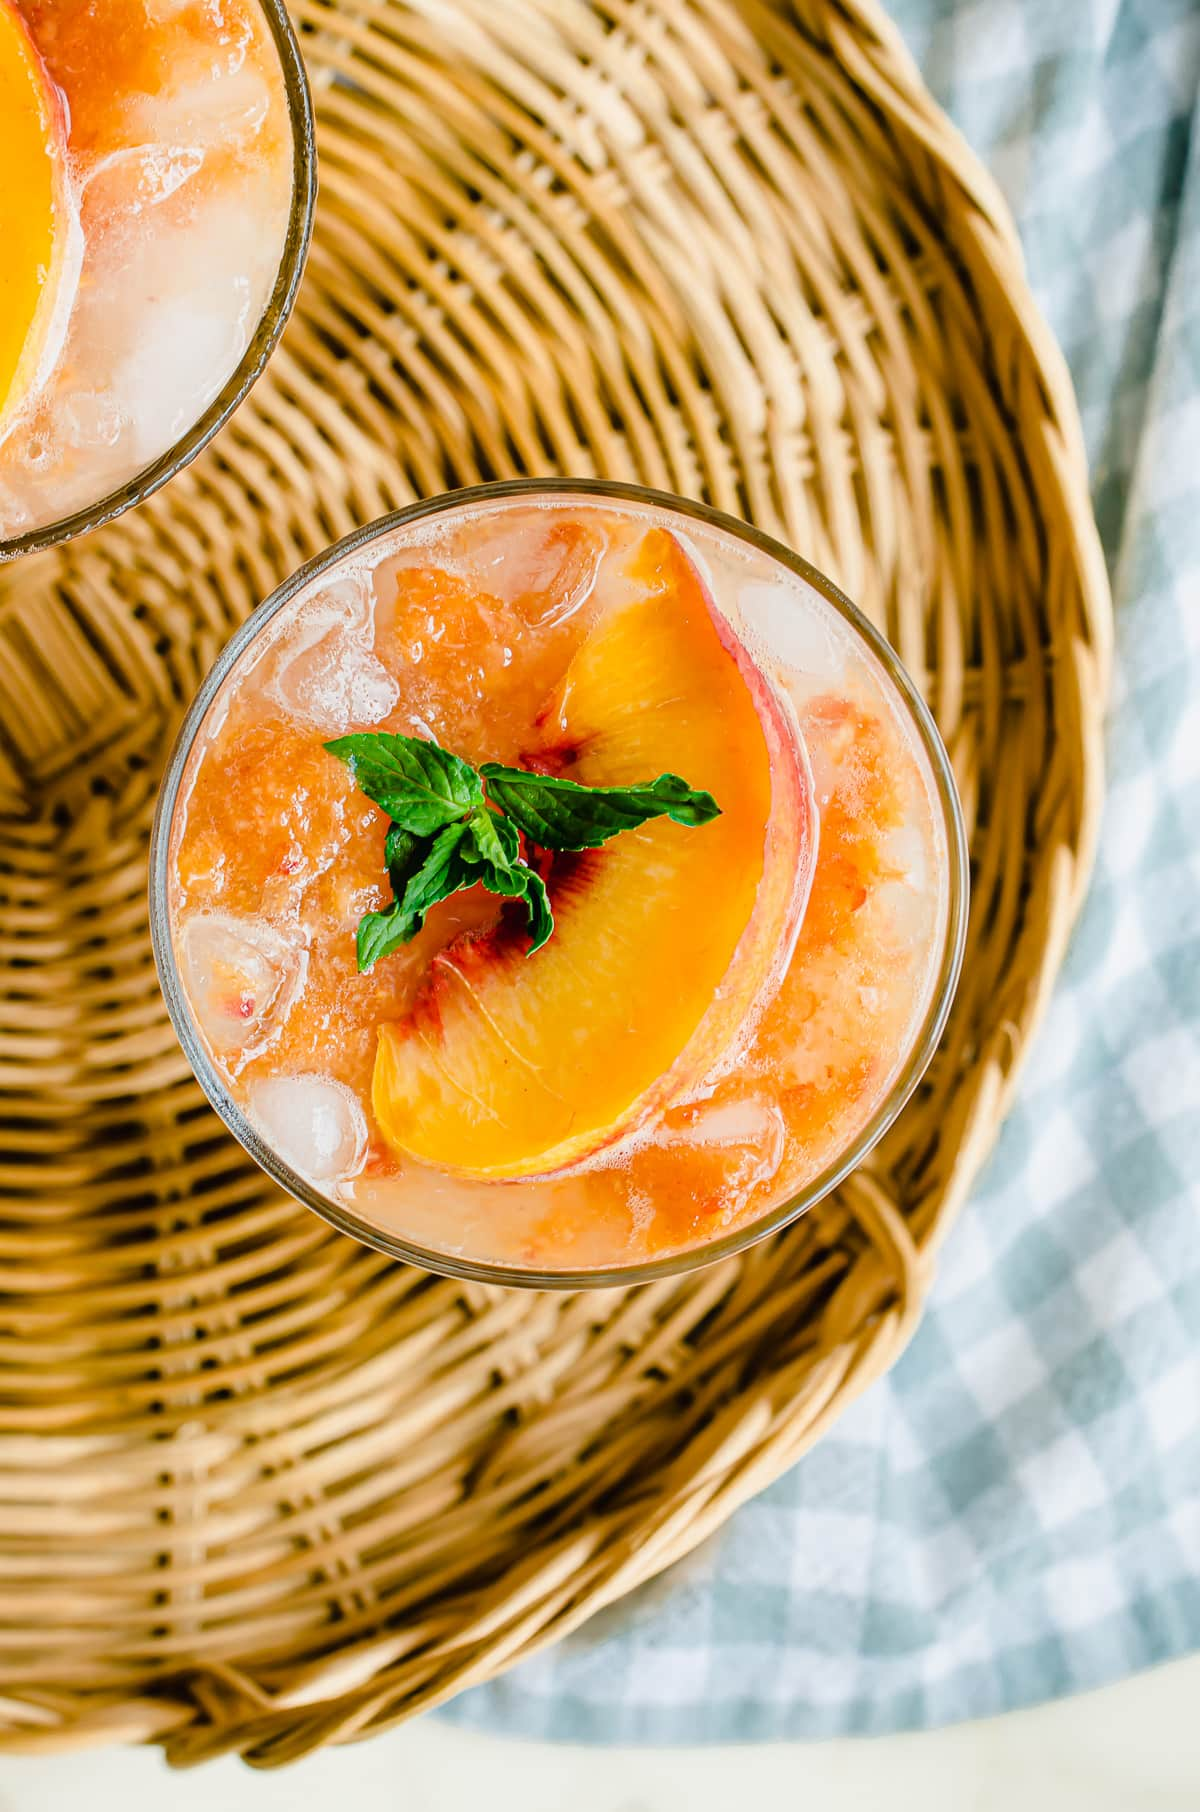 An overhead, close-up shot of a glass of lemonade garnished with a peach and mint sprig.